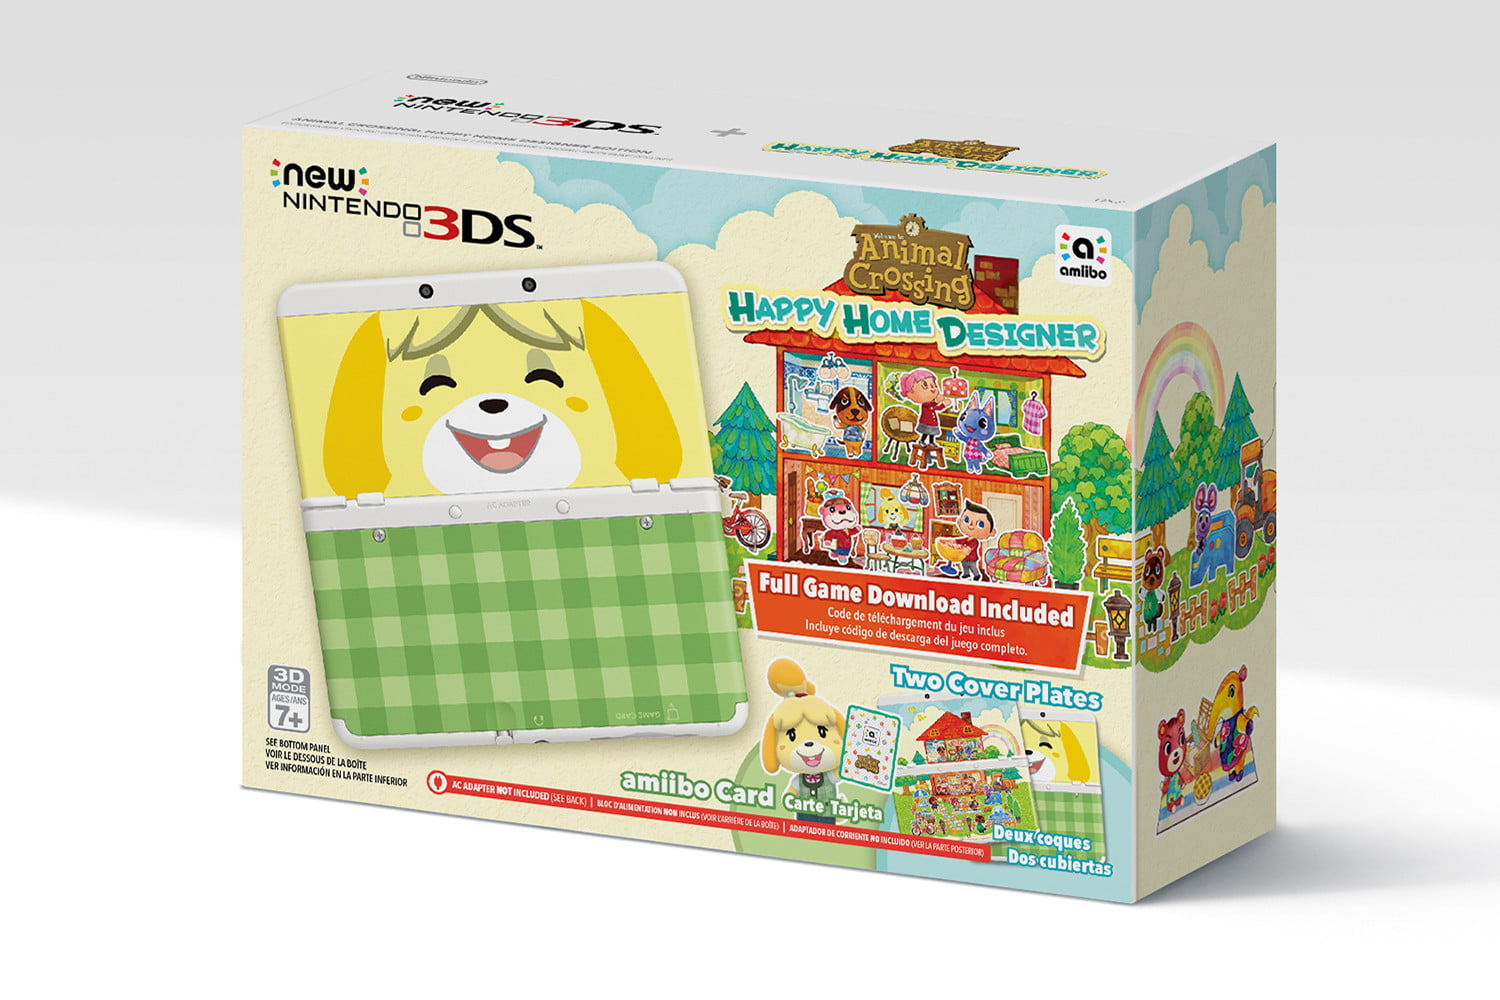 Smaller New Nintendo 3DS Coming To The U.S.